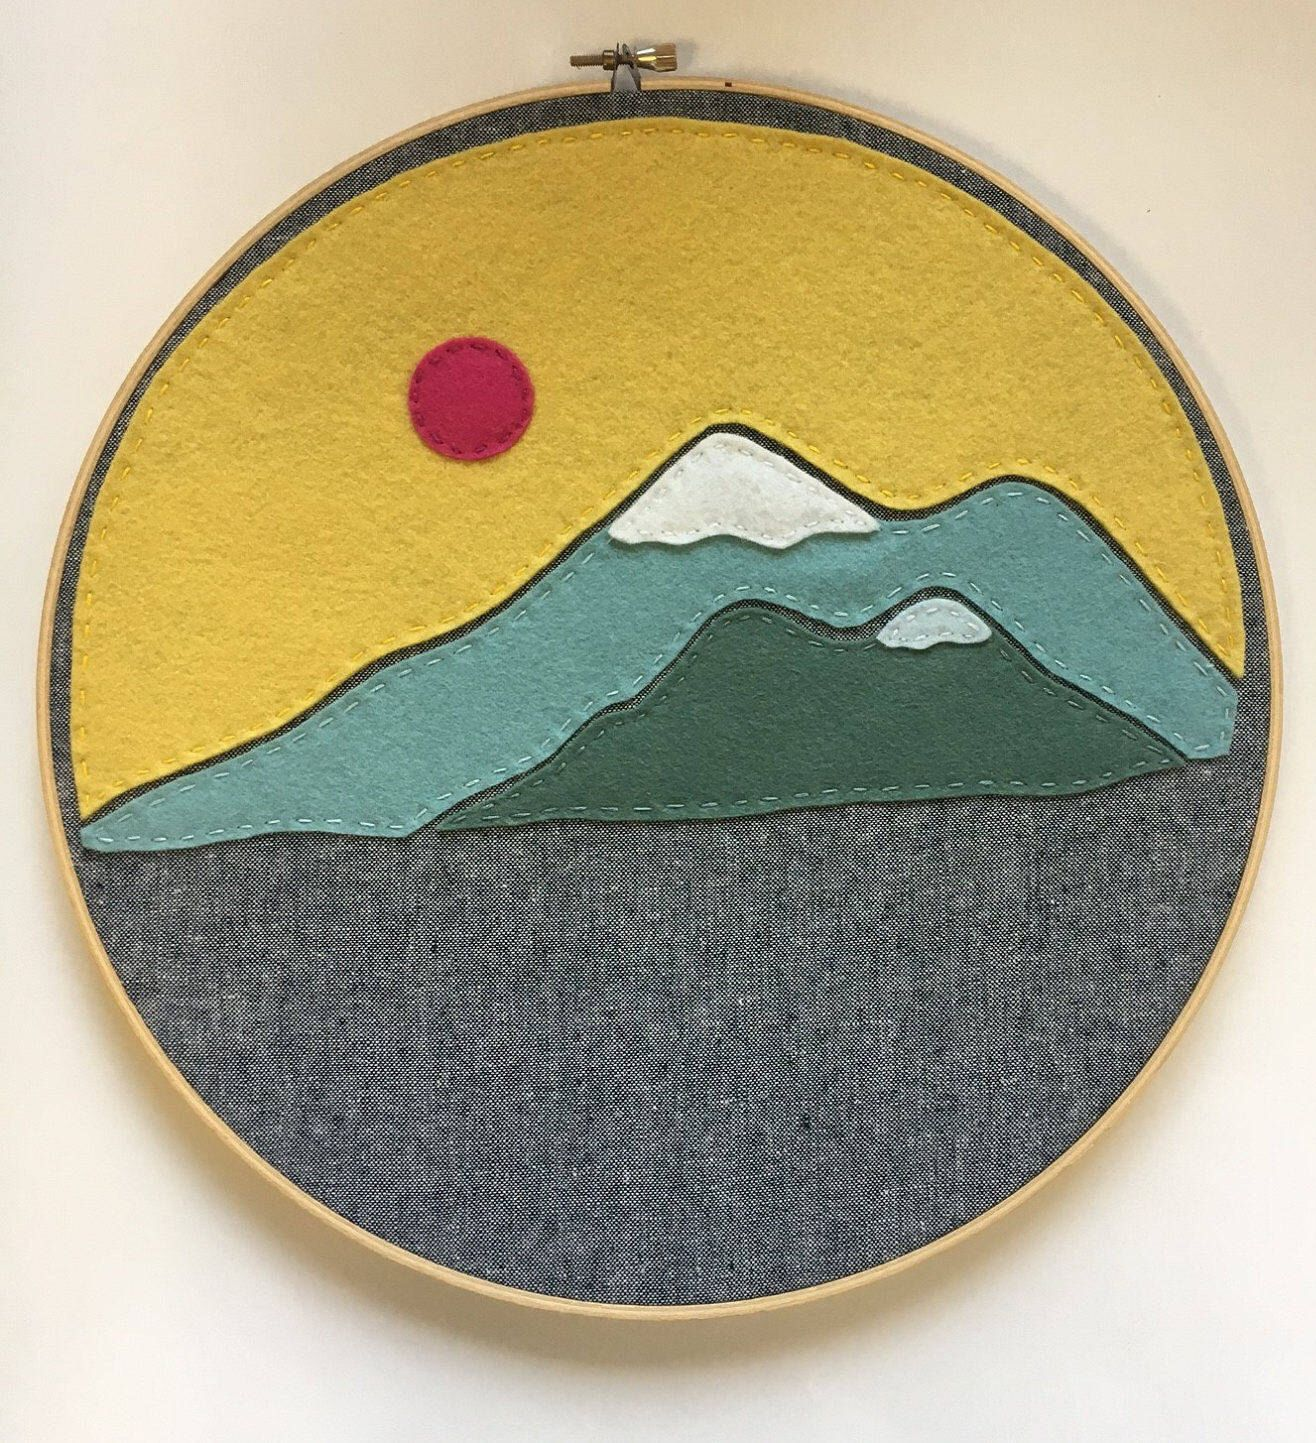 Embroidery Hoop Art, Wall Art, Felt, Mountains, Mountain Range ...